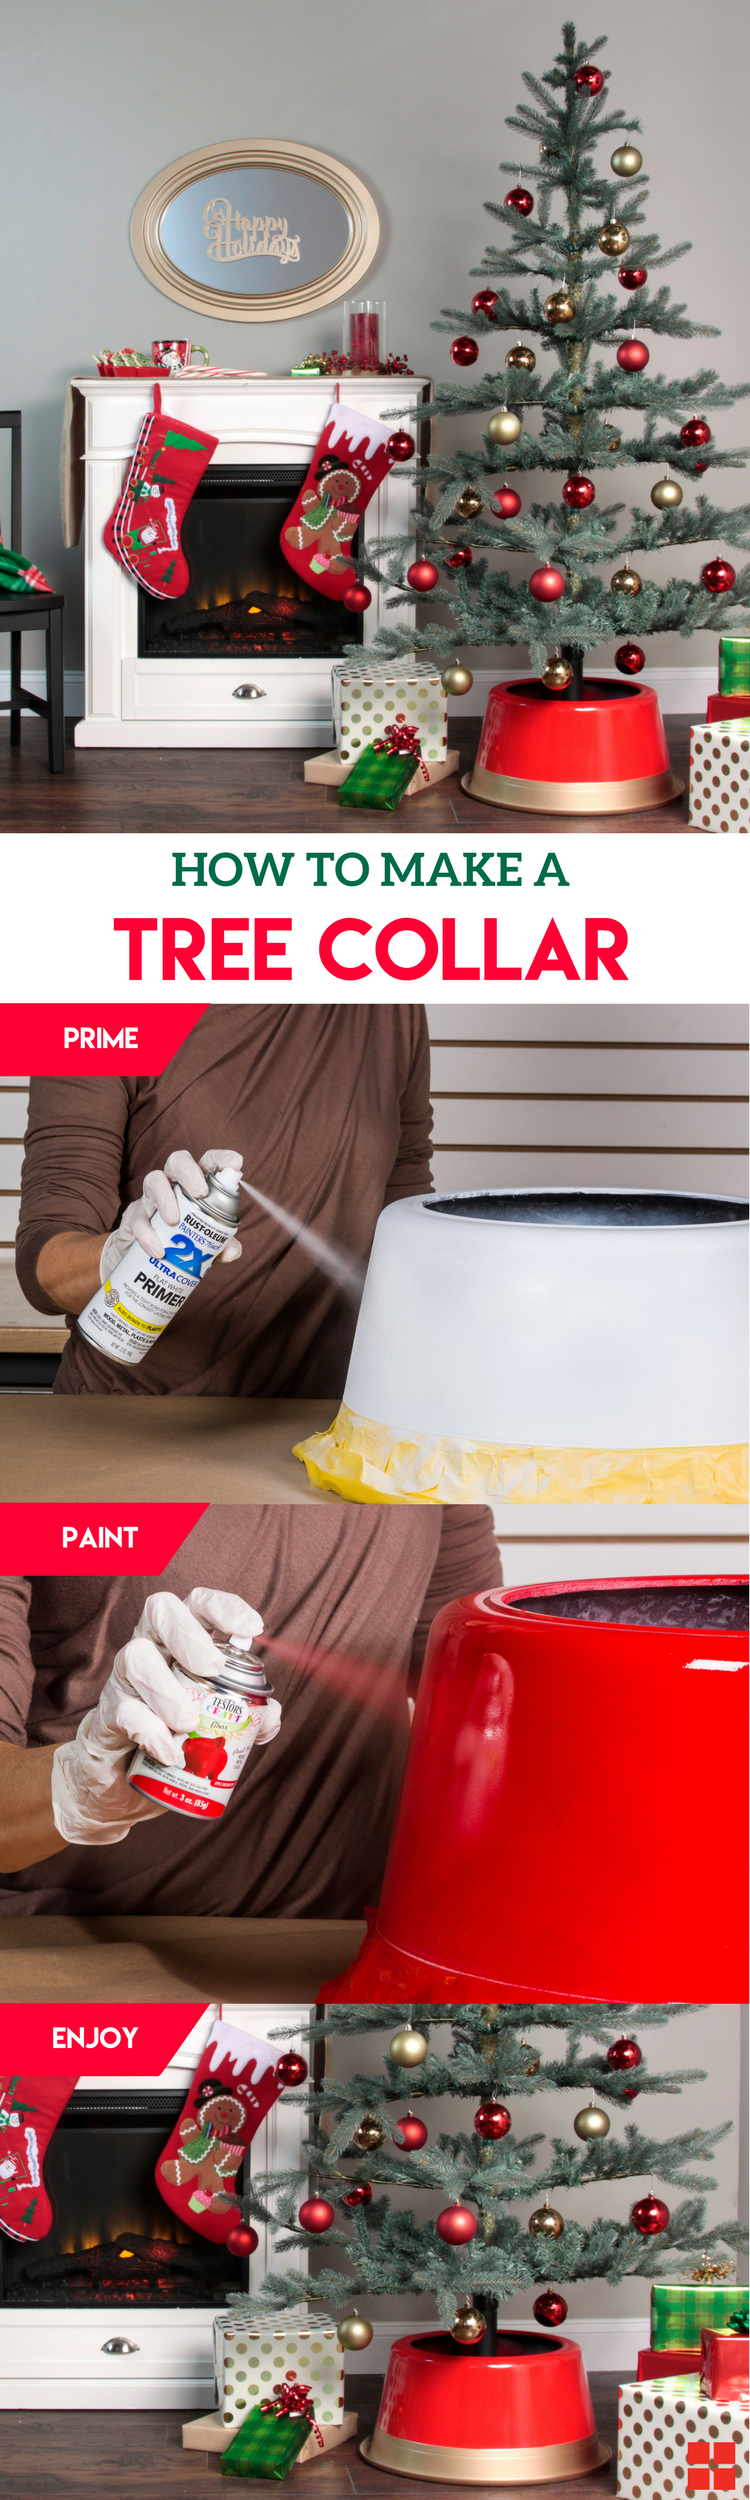 Learn how to make your own DIY tree collar for your rustic